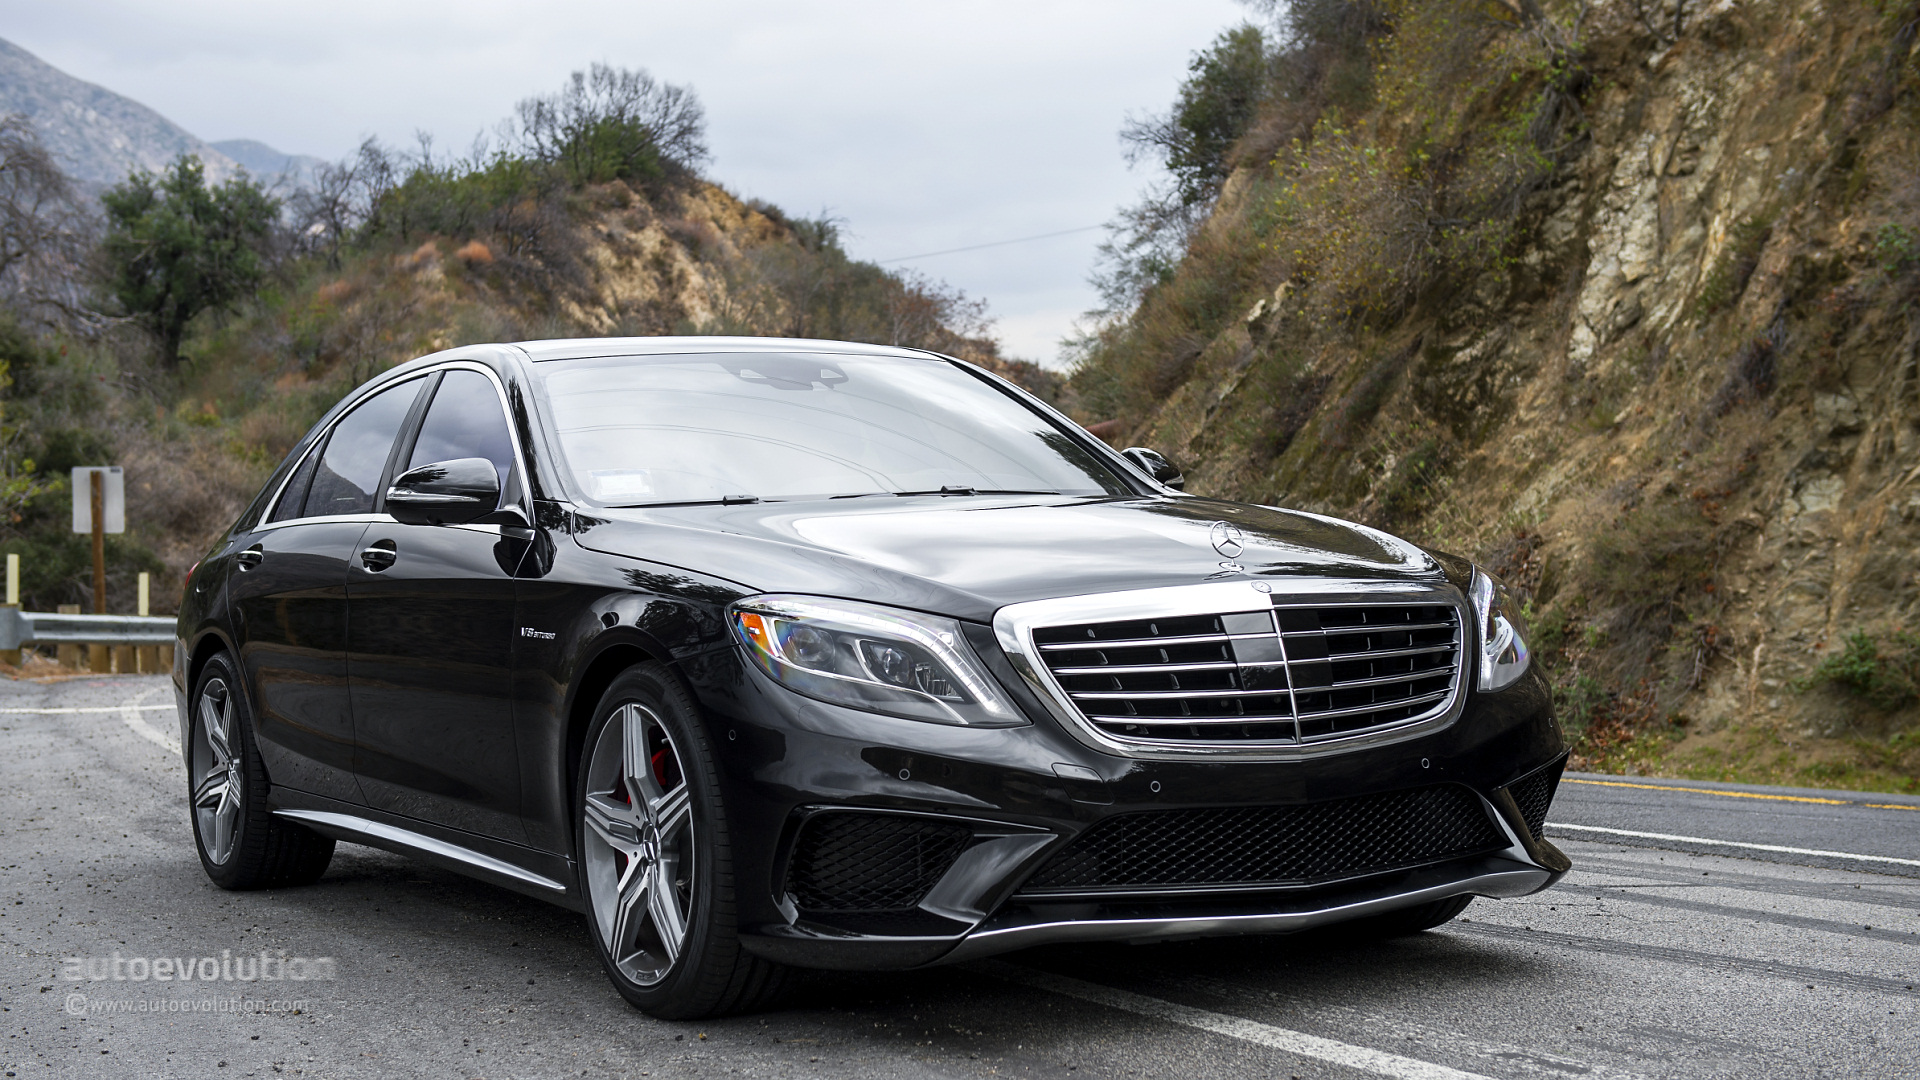 Mercedes benz s63 amg 4matic review autoevolution for Mercedes benz 4matic review